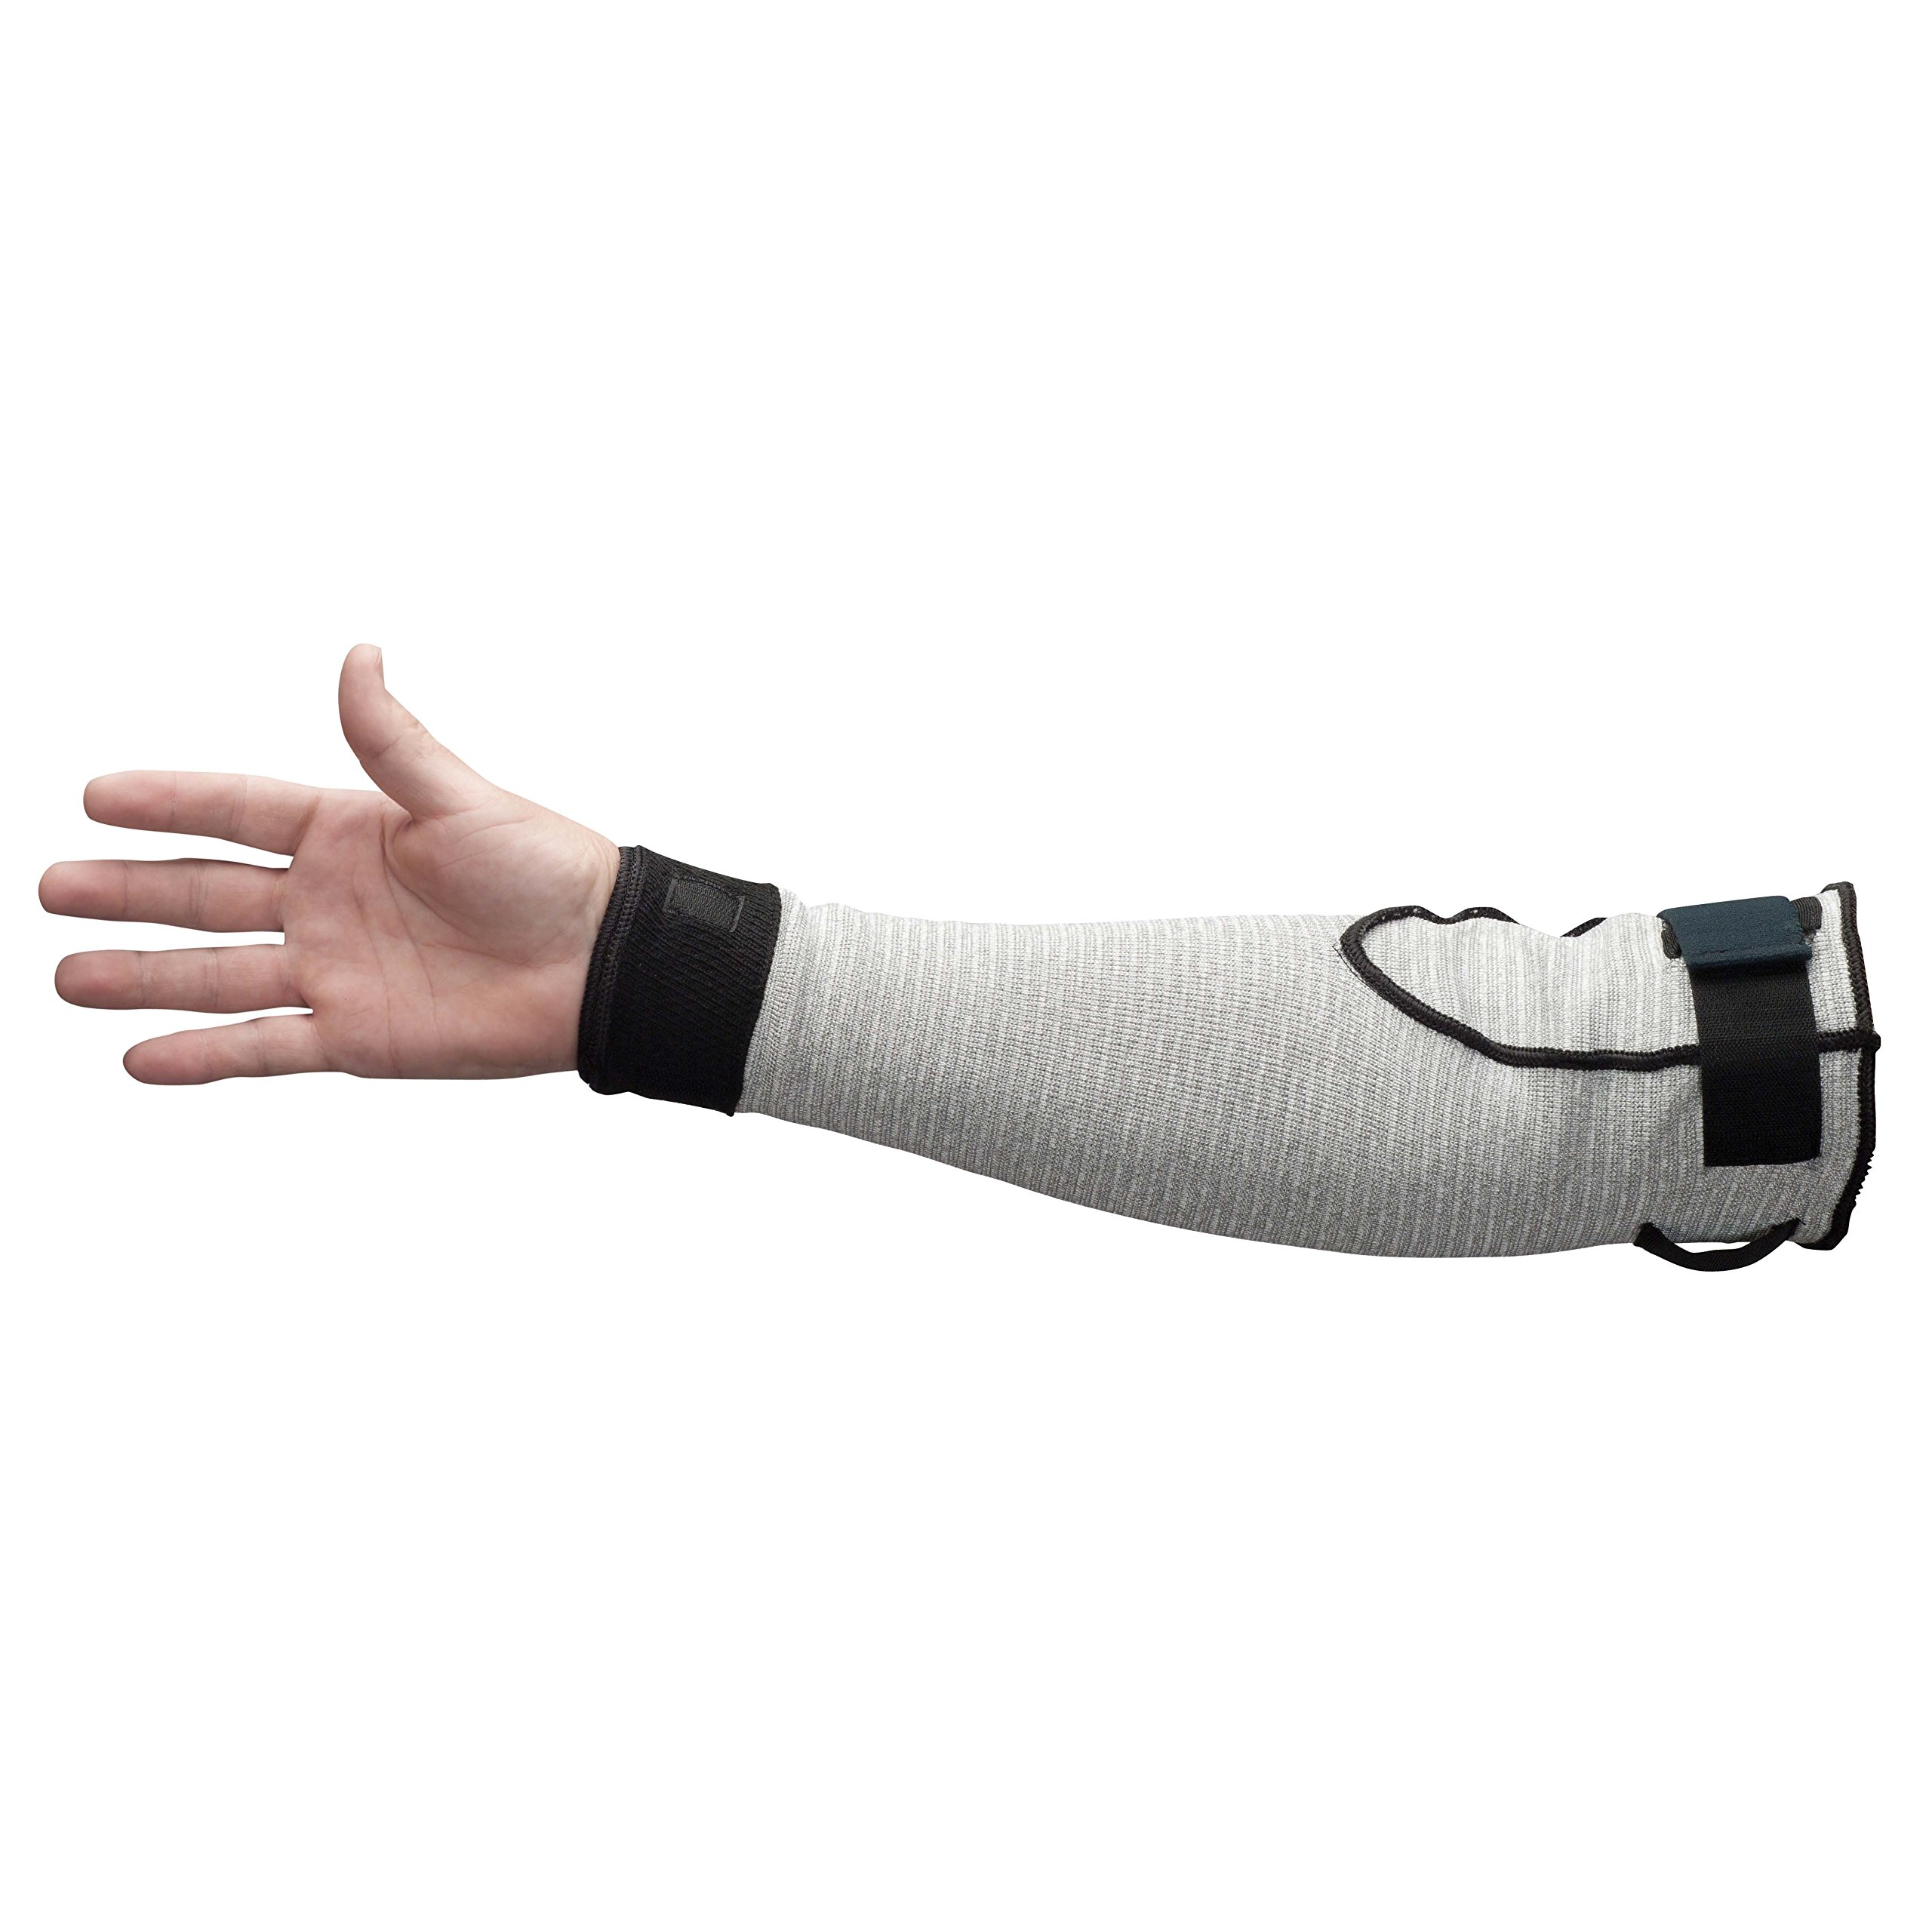 JACKSON SAFETY 90075 G60 Level 5 Cut Resistant Sleeves, 0.5'' Height, 11'' Length, 5'' Width, High molecular-weight polyethylene (HMPE) engineered yarn, 18'', Marled Gray (Pack of 24)